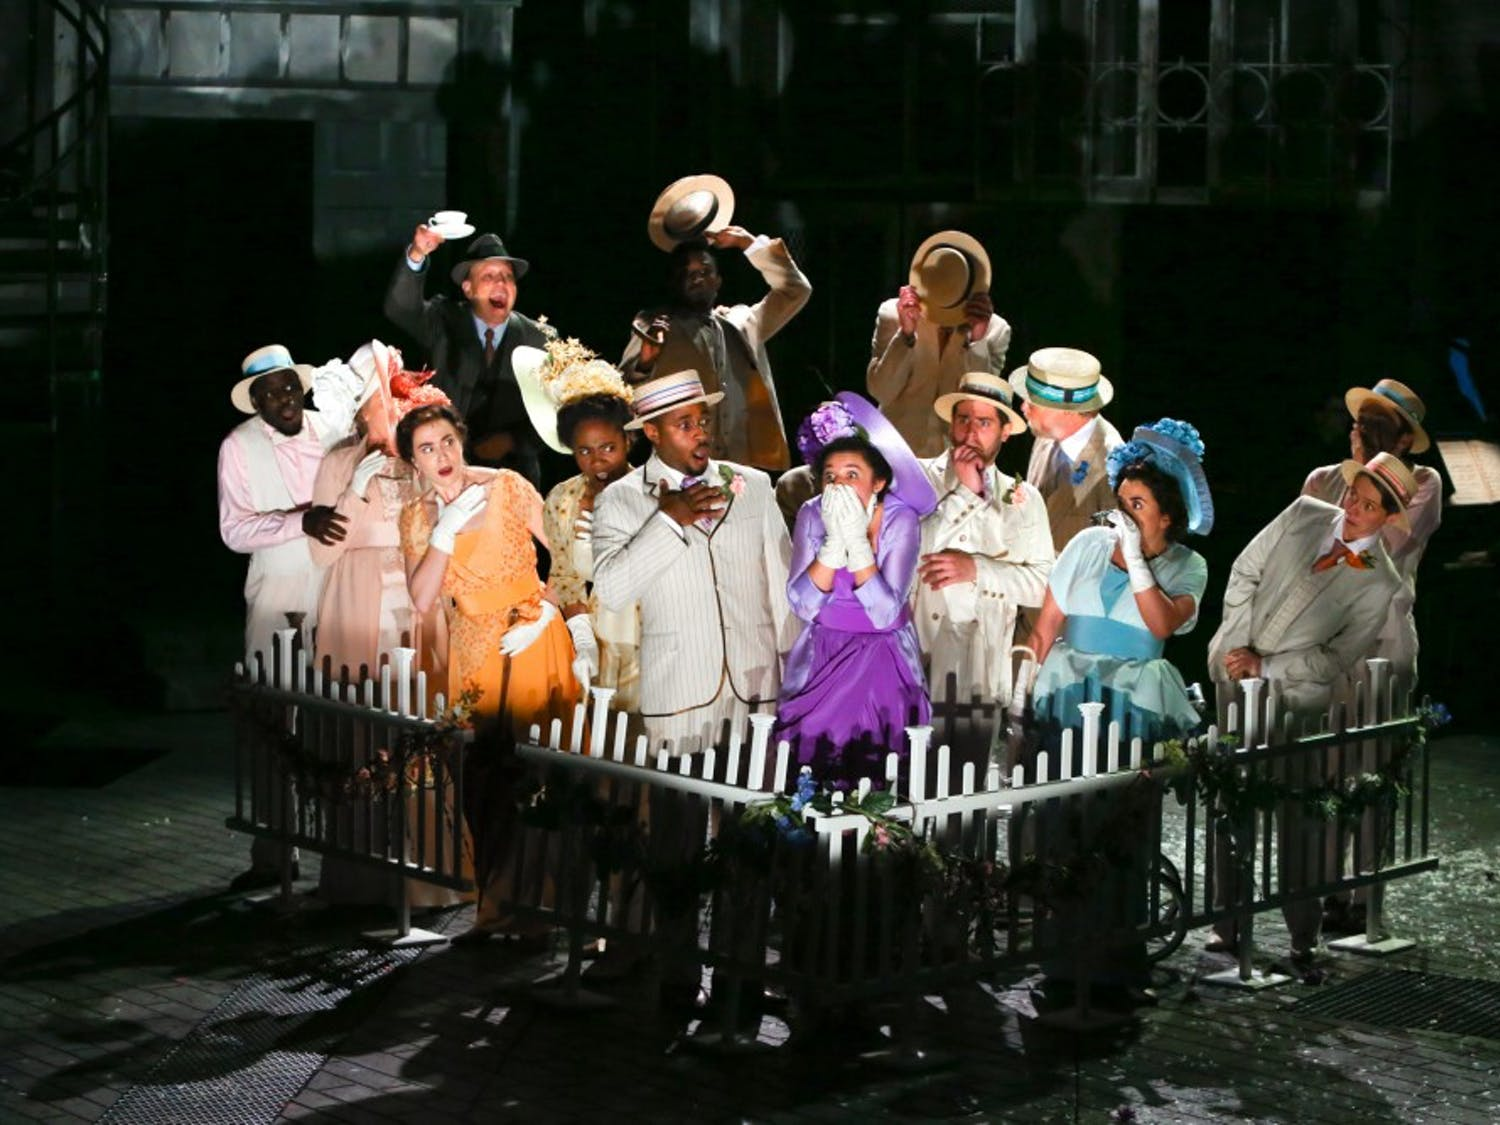 """PlayMakers' Repertory Company in their production of """"My Fair Lady.""""Photo taken byKen Huth, courtesy of Rosalie Preston"""